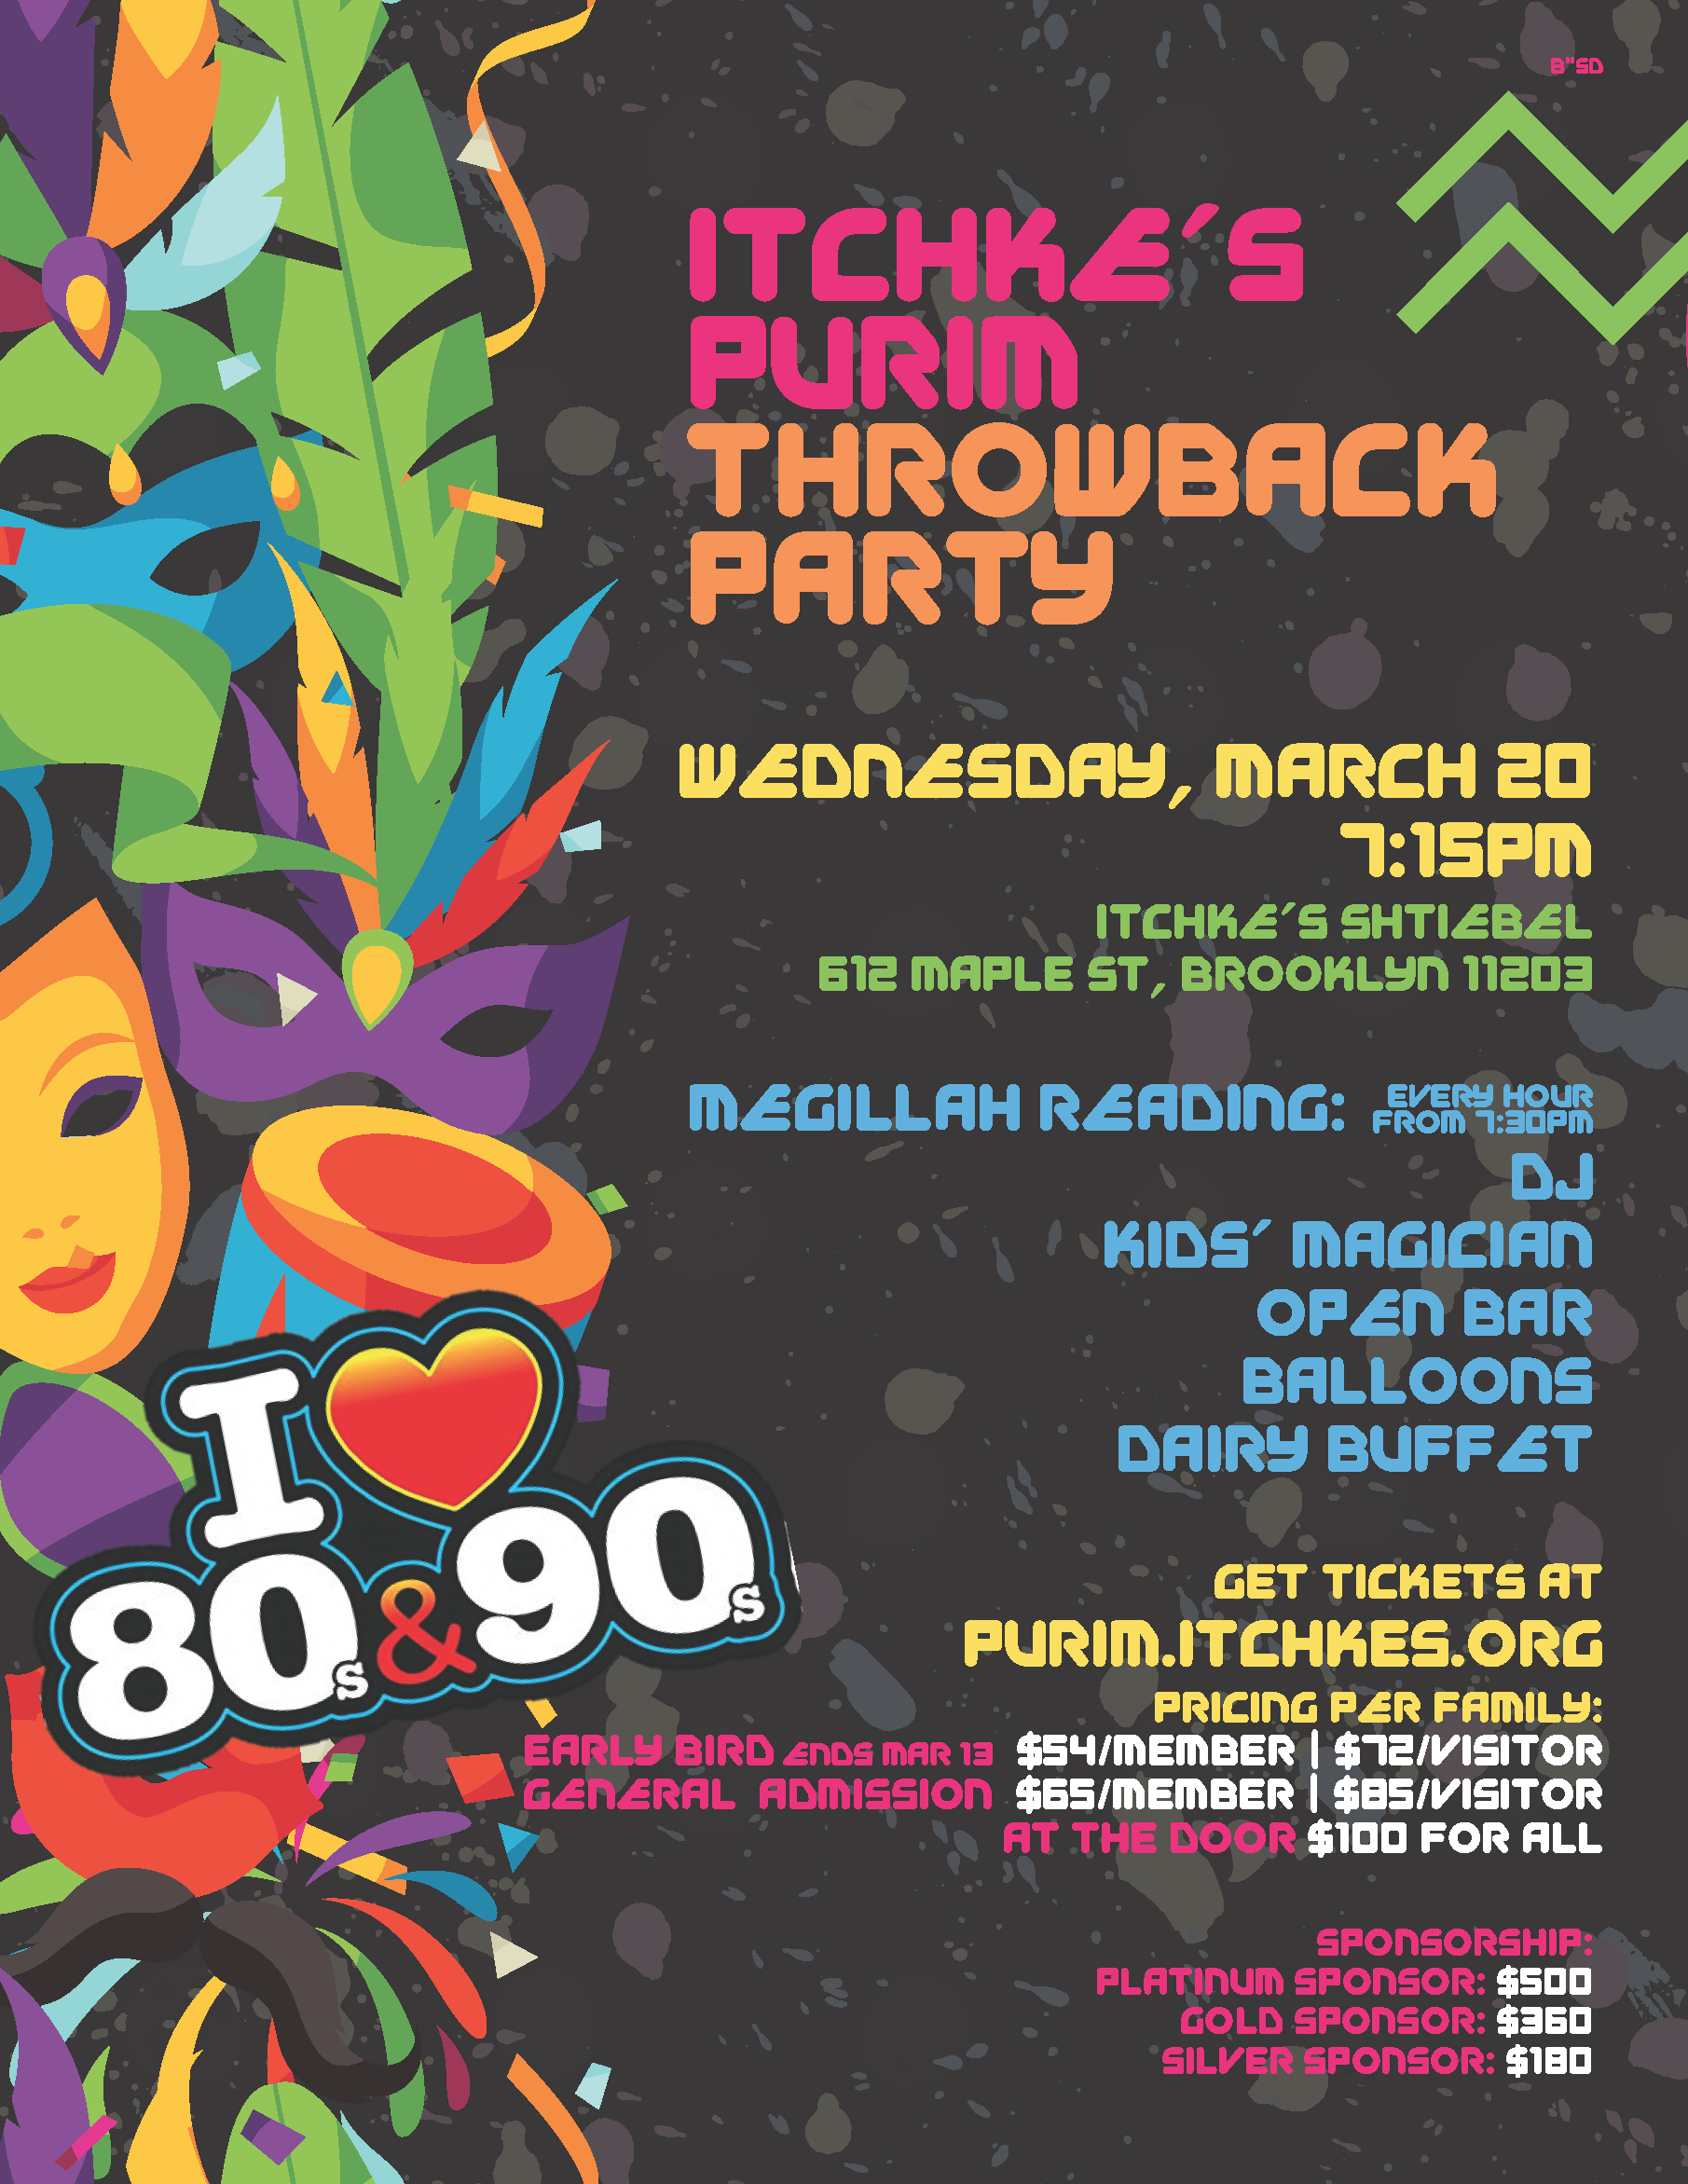 ITCHKES PURIM PARTY (4)